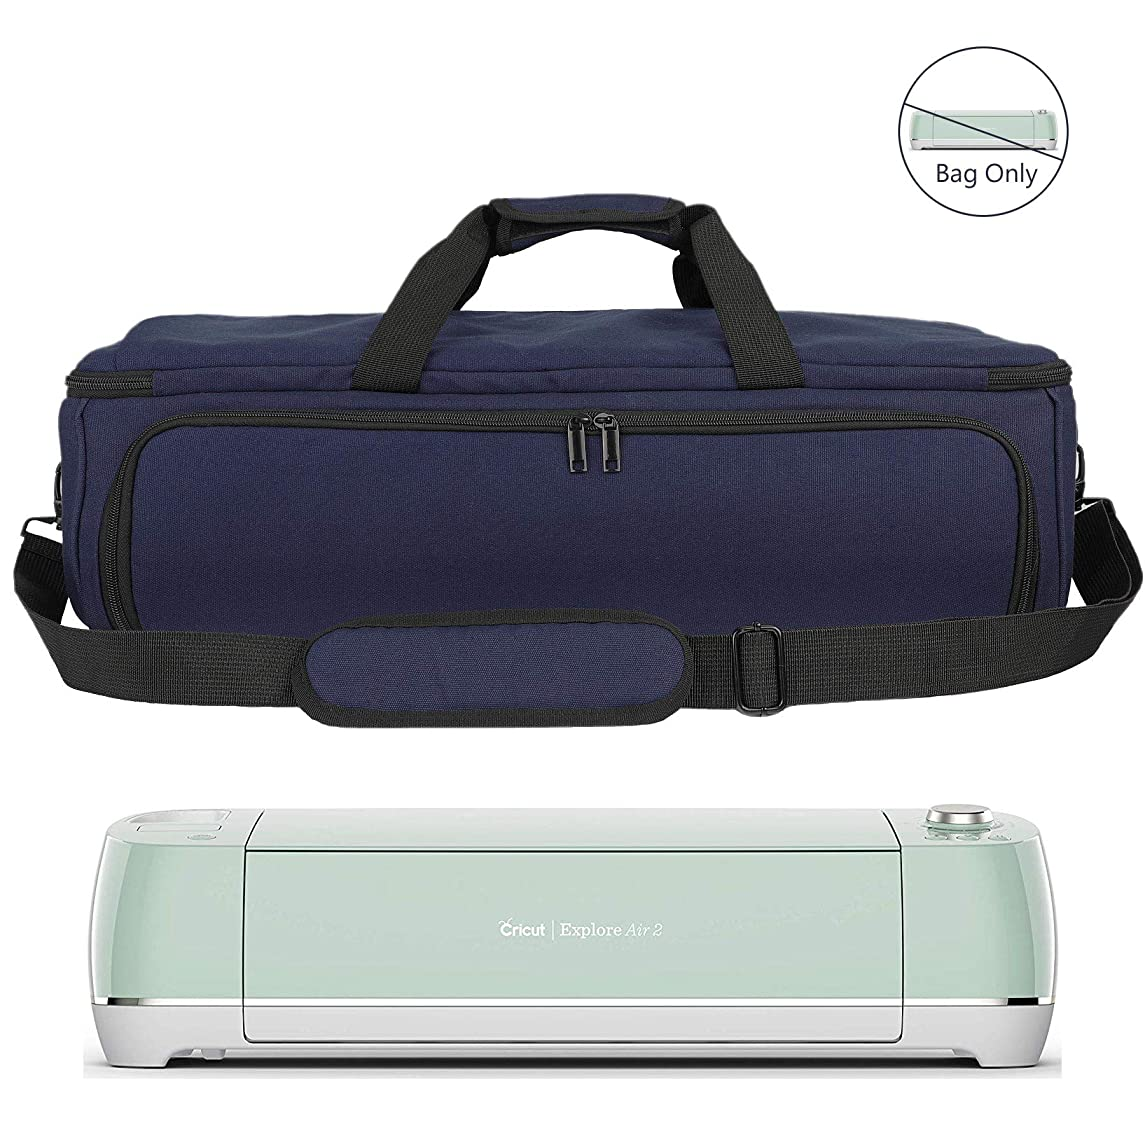 Carrying Bag Compatible with Cricut Explore Air(Air2) / Cricut Maker, Tote Nylon Carry Bag Fit to Cricut Die-Cut Machine and Supplies